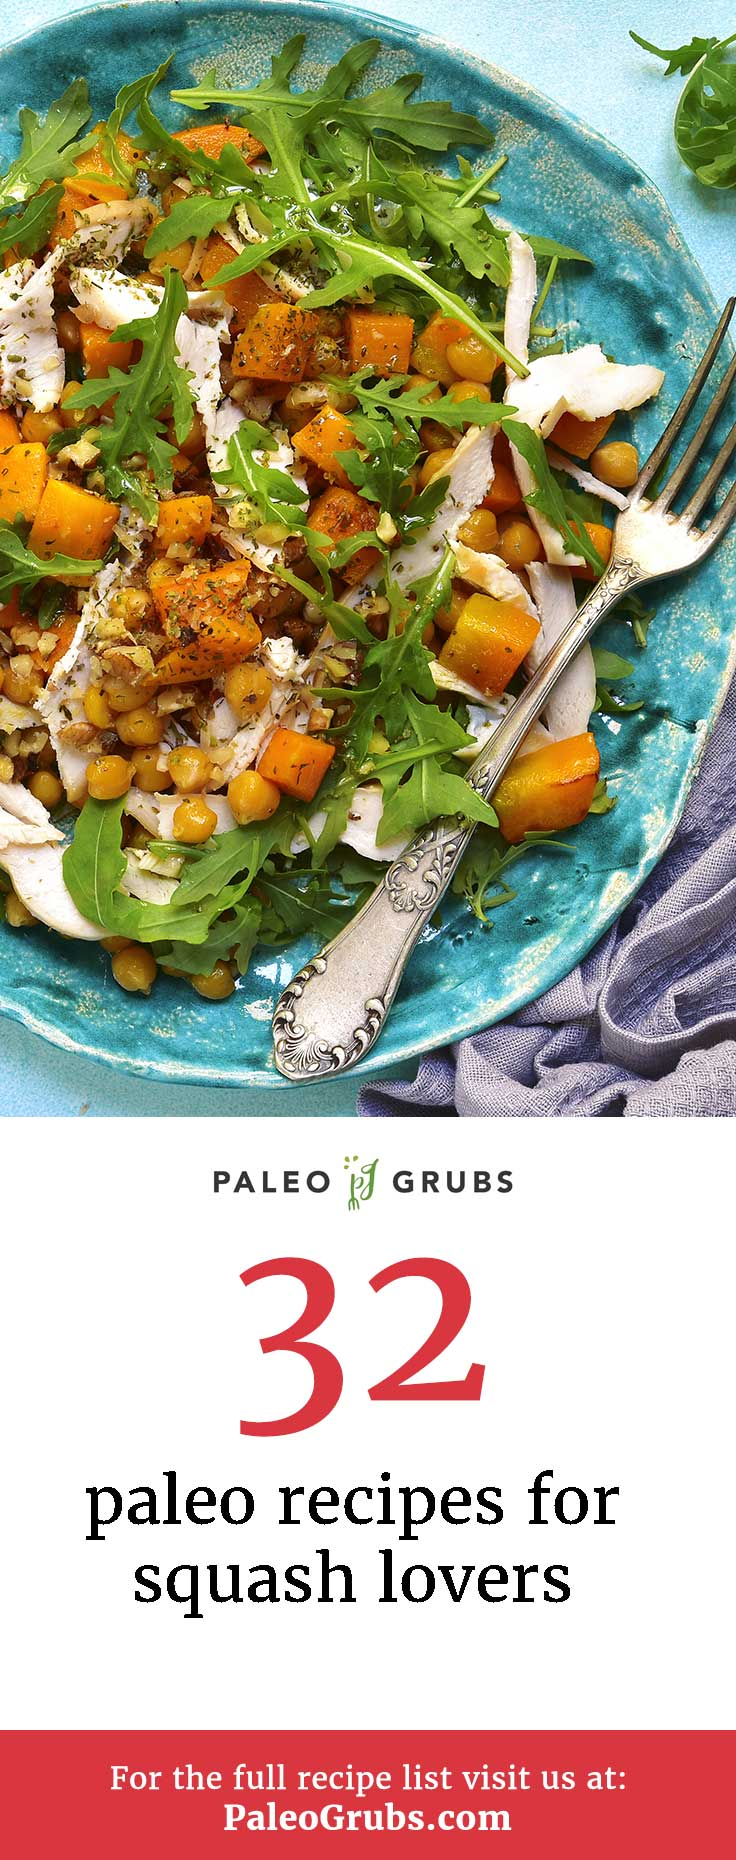 When squash is in season I'm always on the lookout for ways to use it up. Thankfully I found this collection of squash recipes. So many tasty creations!